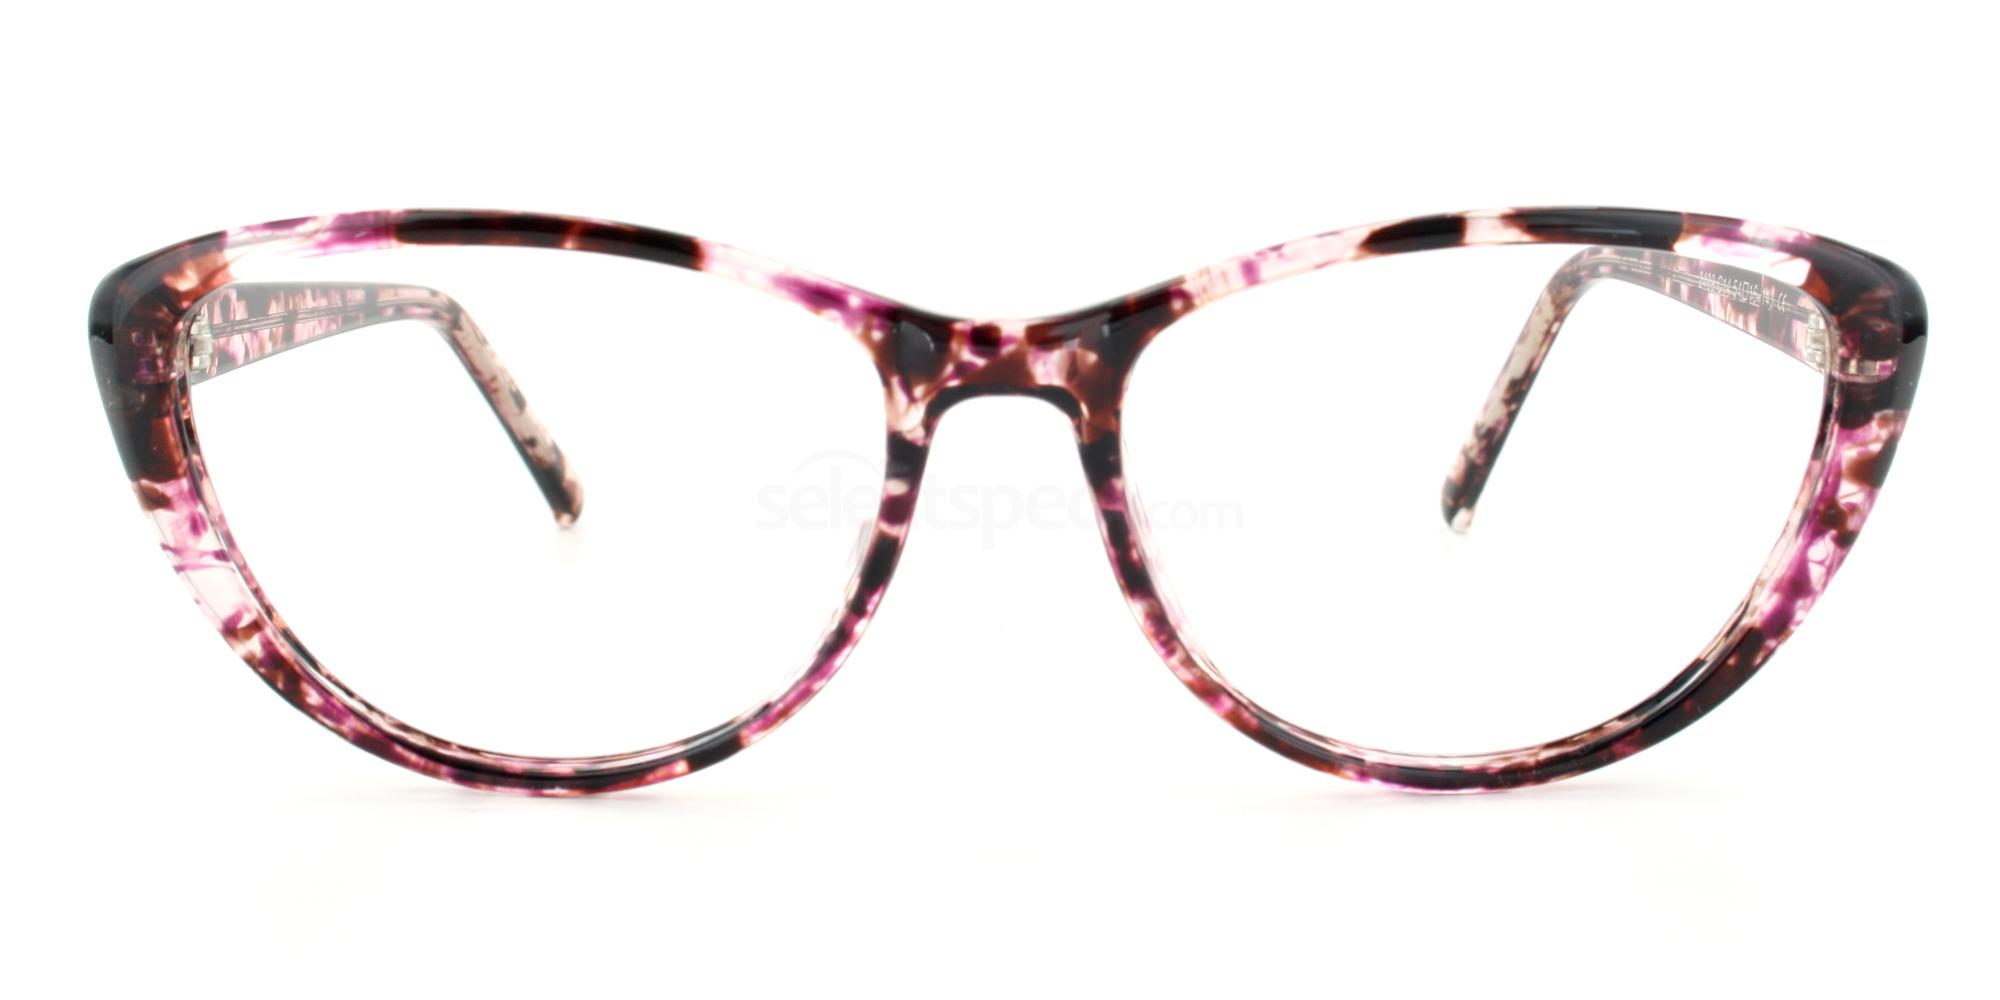 C14 2489 - Pink Demi Glasses, Savannah